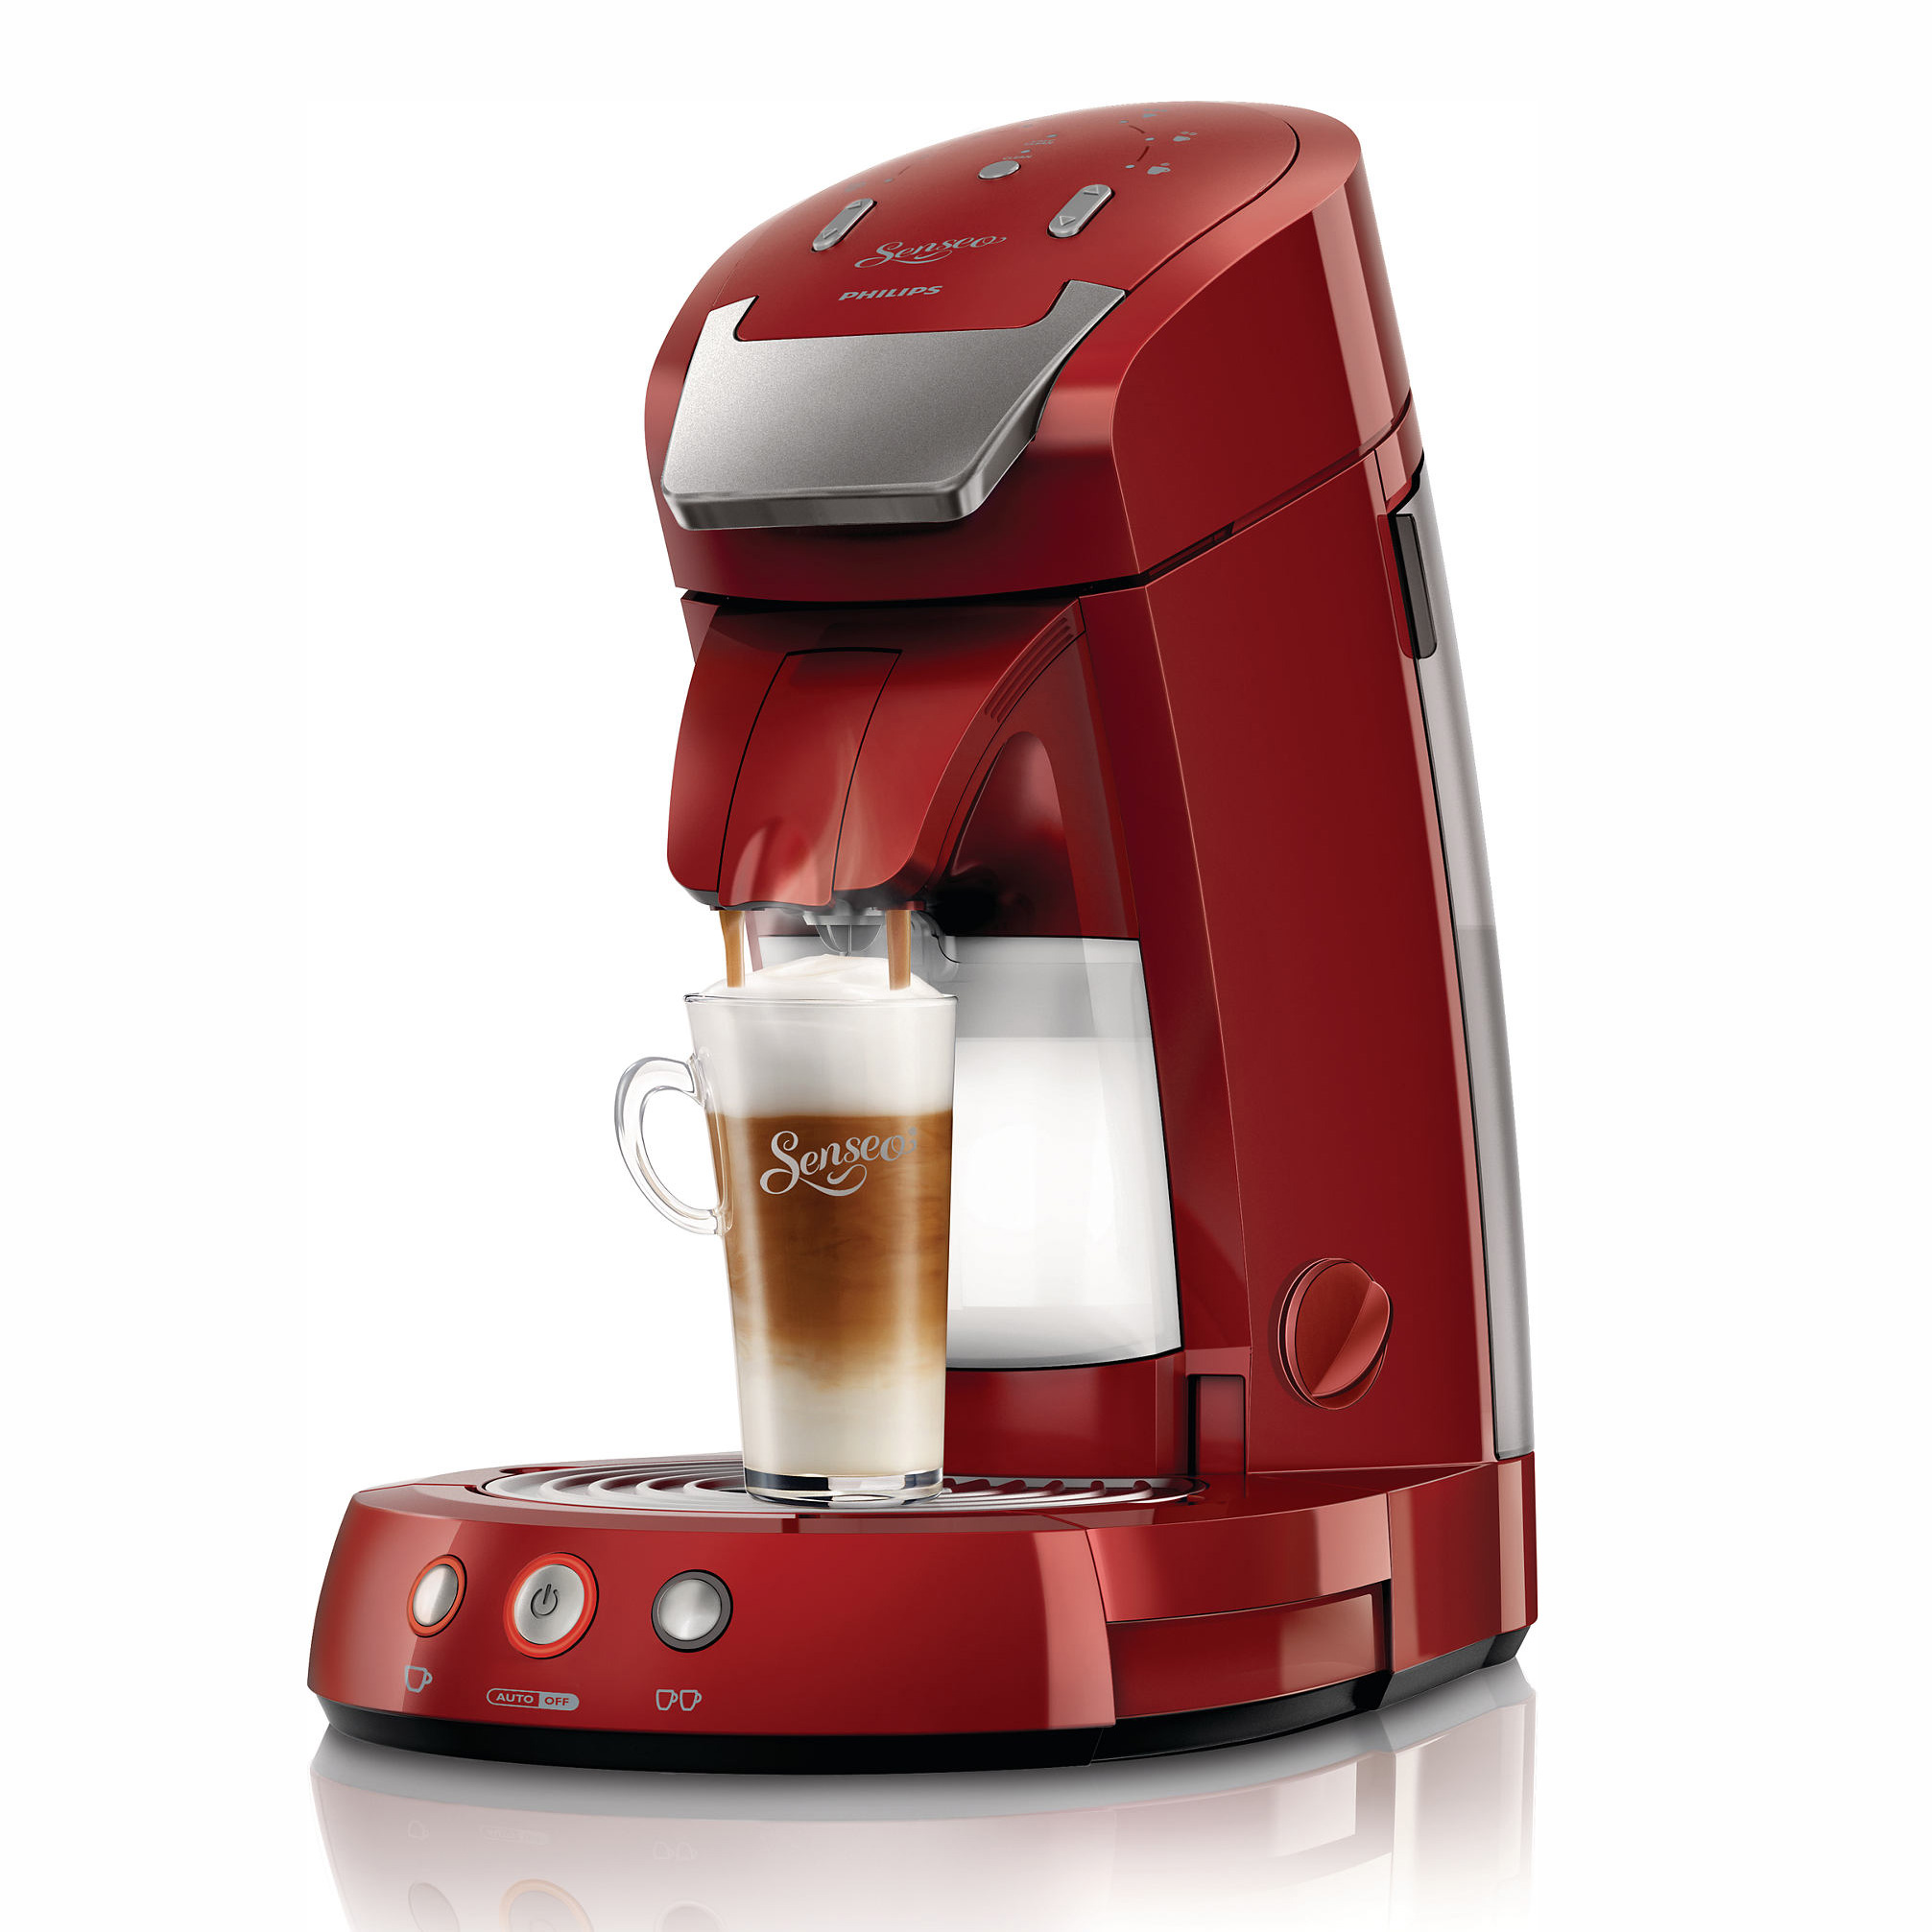 Philips Senseo Latte Select Hd785480 Coffee Pod System Deep Red At About Teade Shop